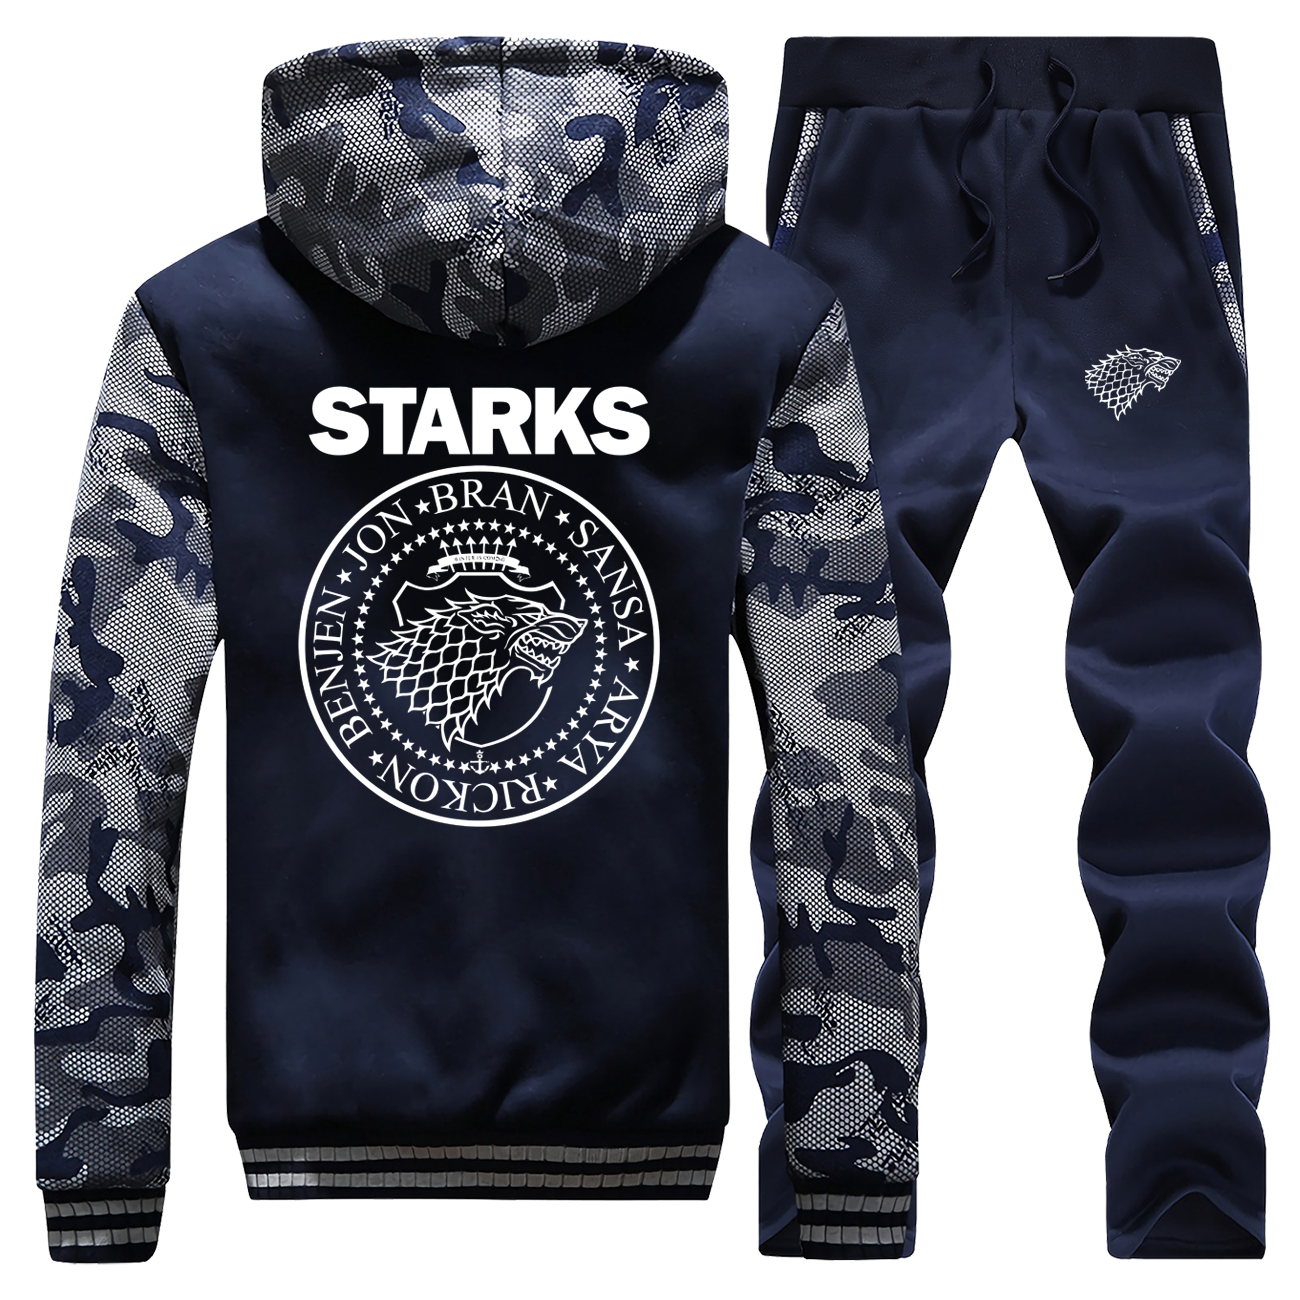 Game Of Thrones Hoodies Wolf Pants Set Men Tracksuit Coat House Starks Winter Thick Warm Jacket Militray Sportswear 2 Piece Sets